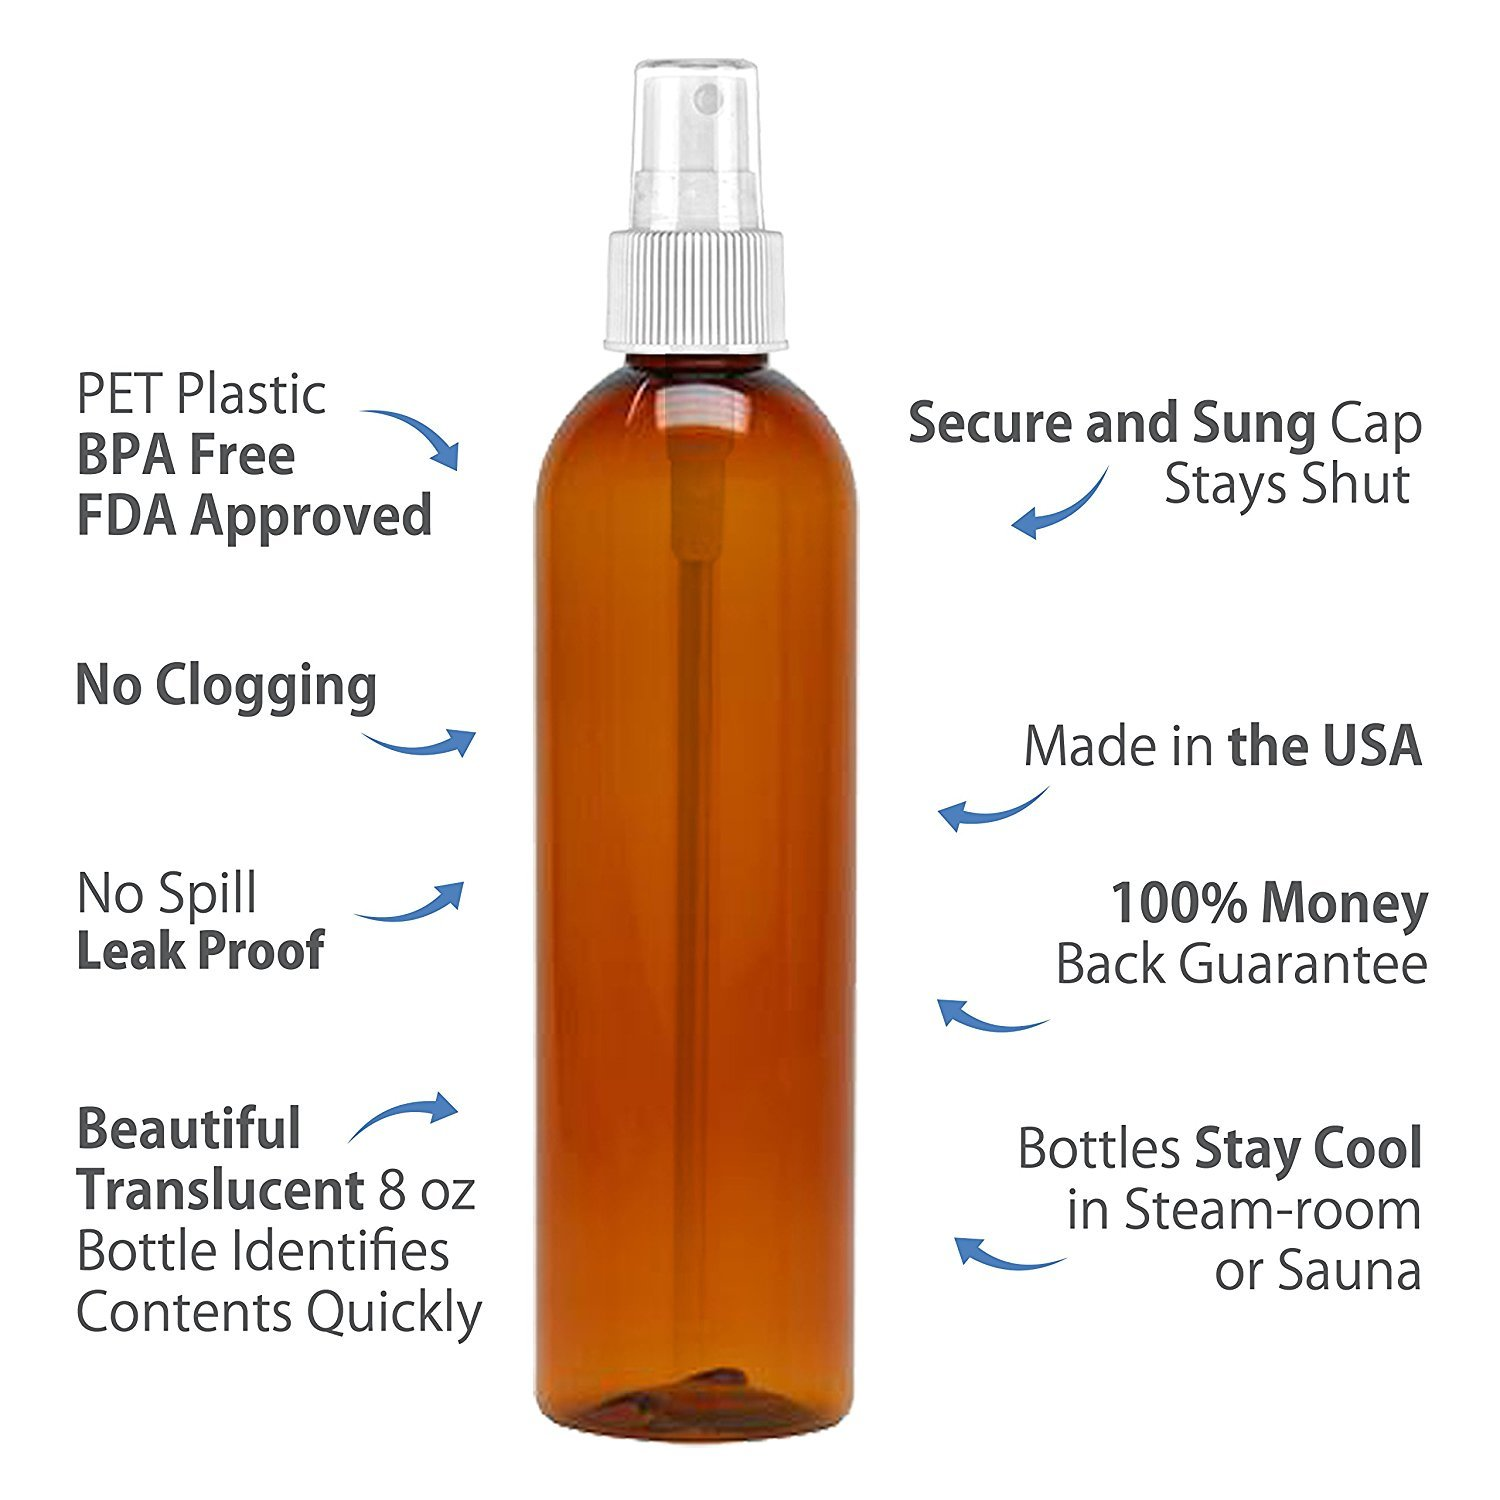 MoYo Natural Labs 8 oz Spray Bottles Fine Mist Empty Travel Containers, BPA Free PET Plastic for Essential Oils and Liquids/Cosmetics (Pack of 12, Amber)